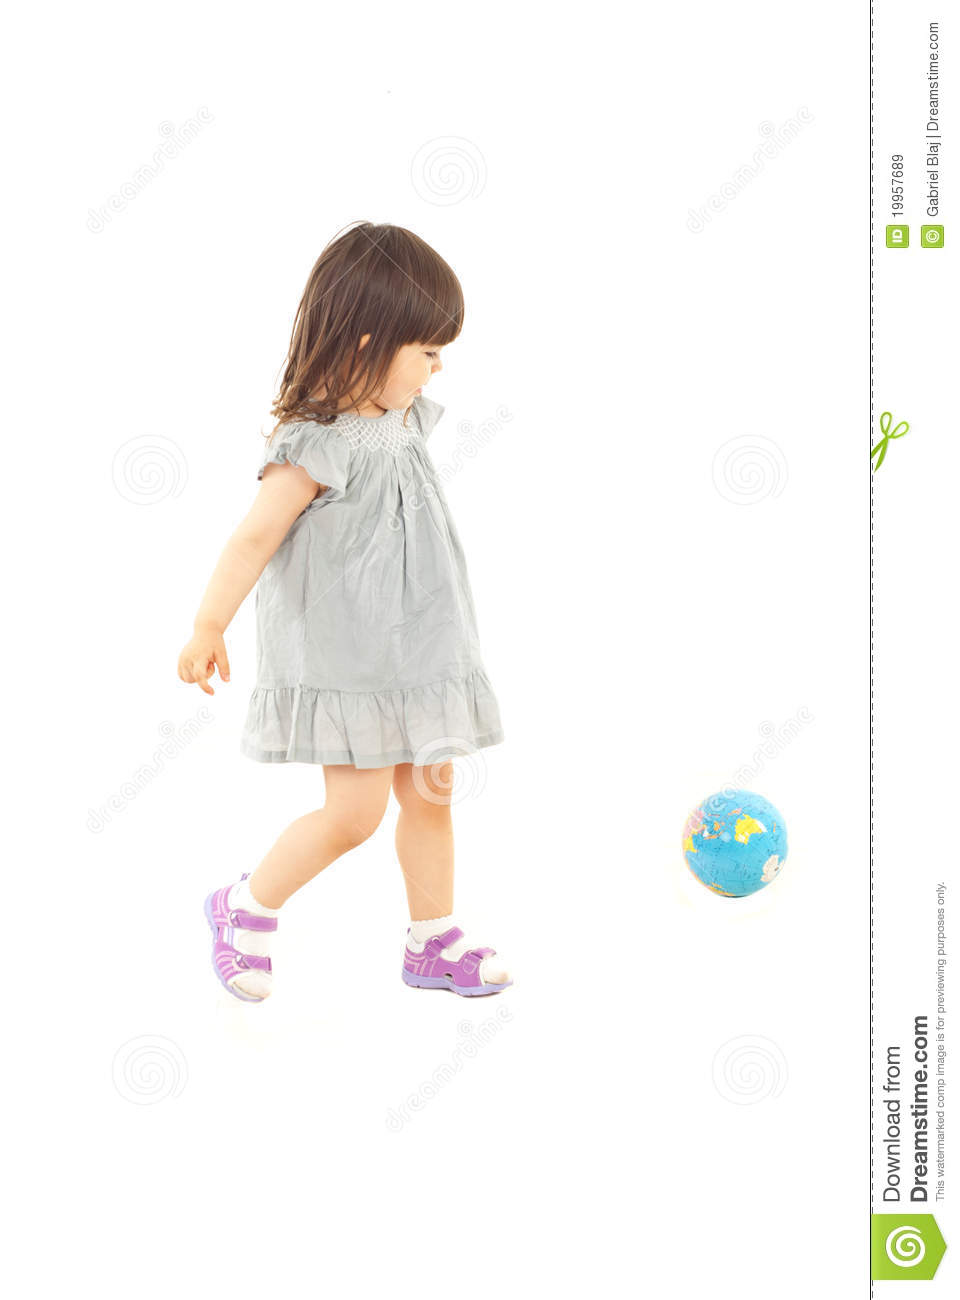 Toddler girl playing with world globe